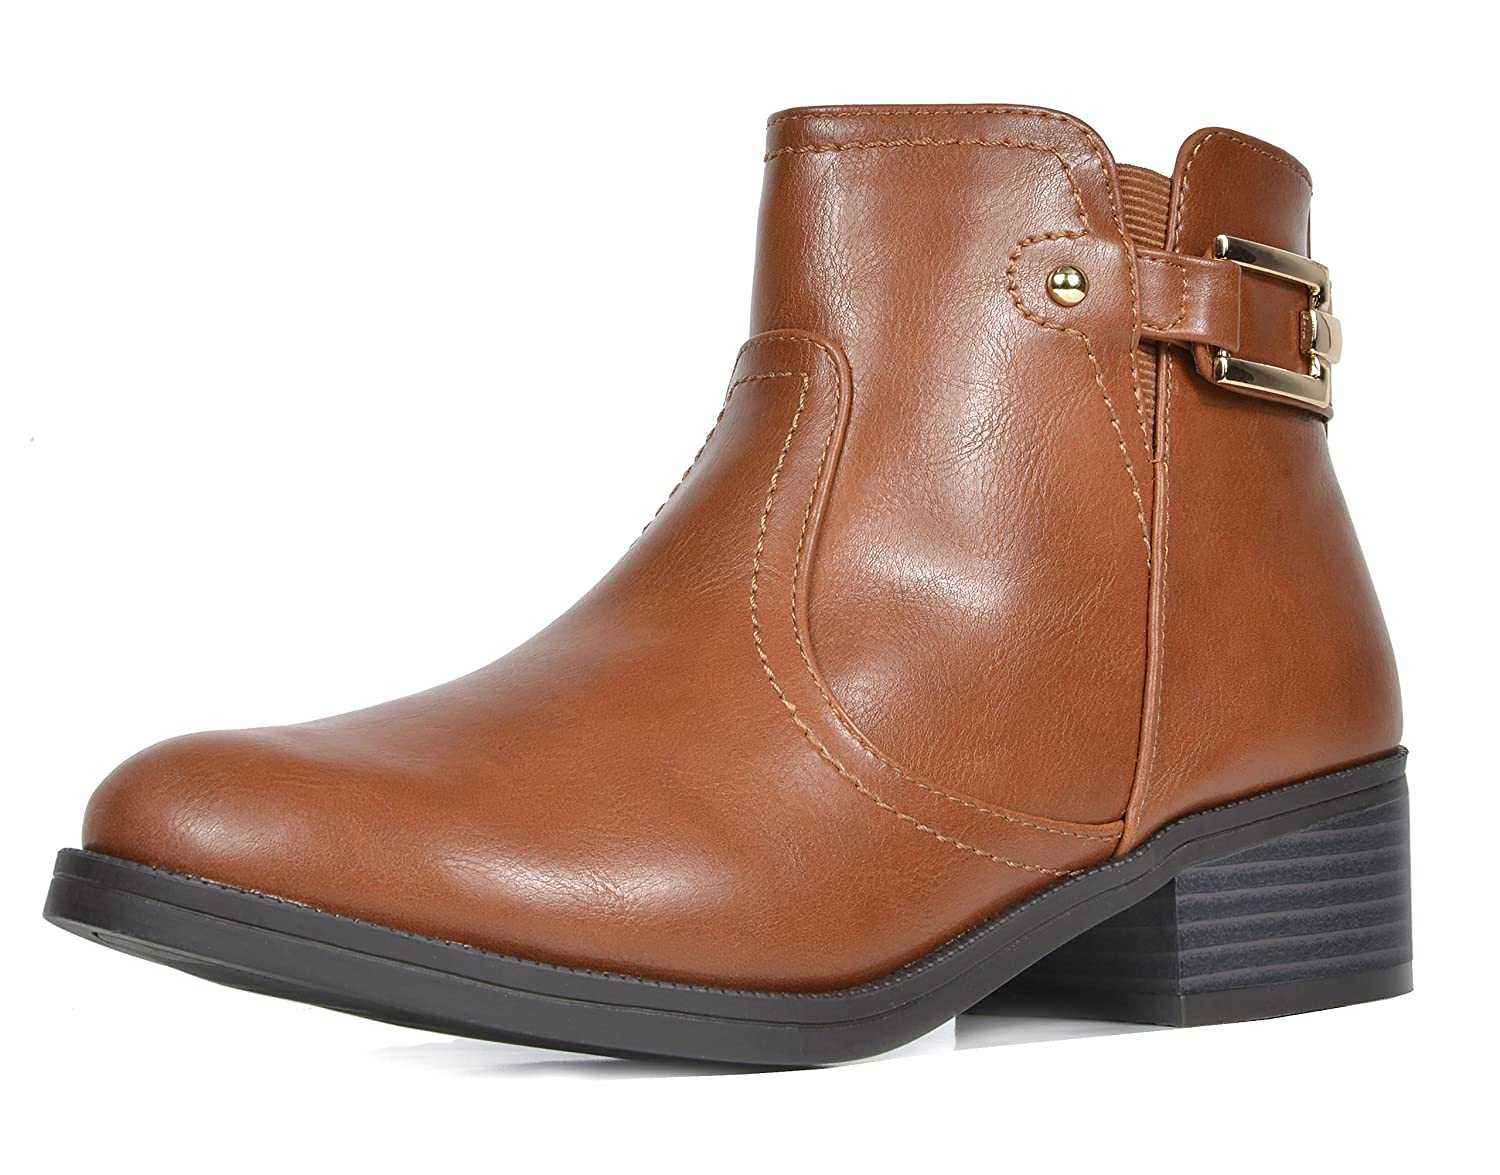 TOETOS Women's Alexis Low Stacked Heel Ankle Riding Booties